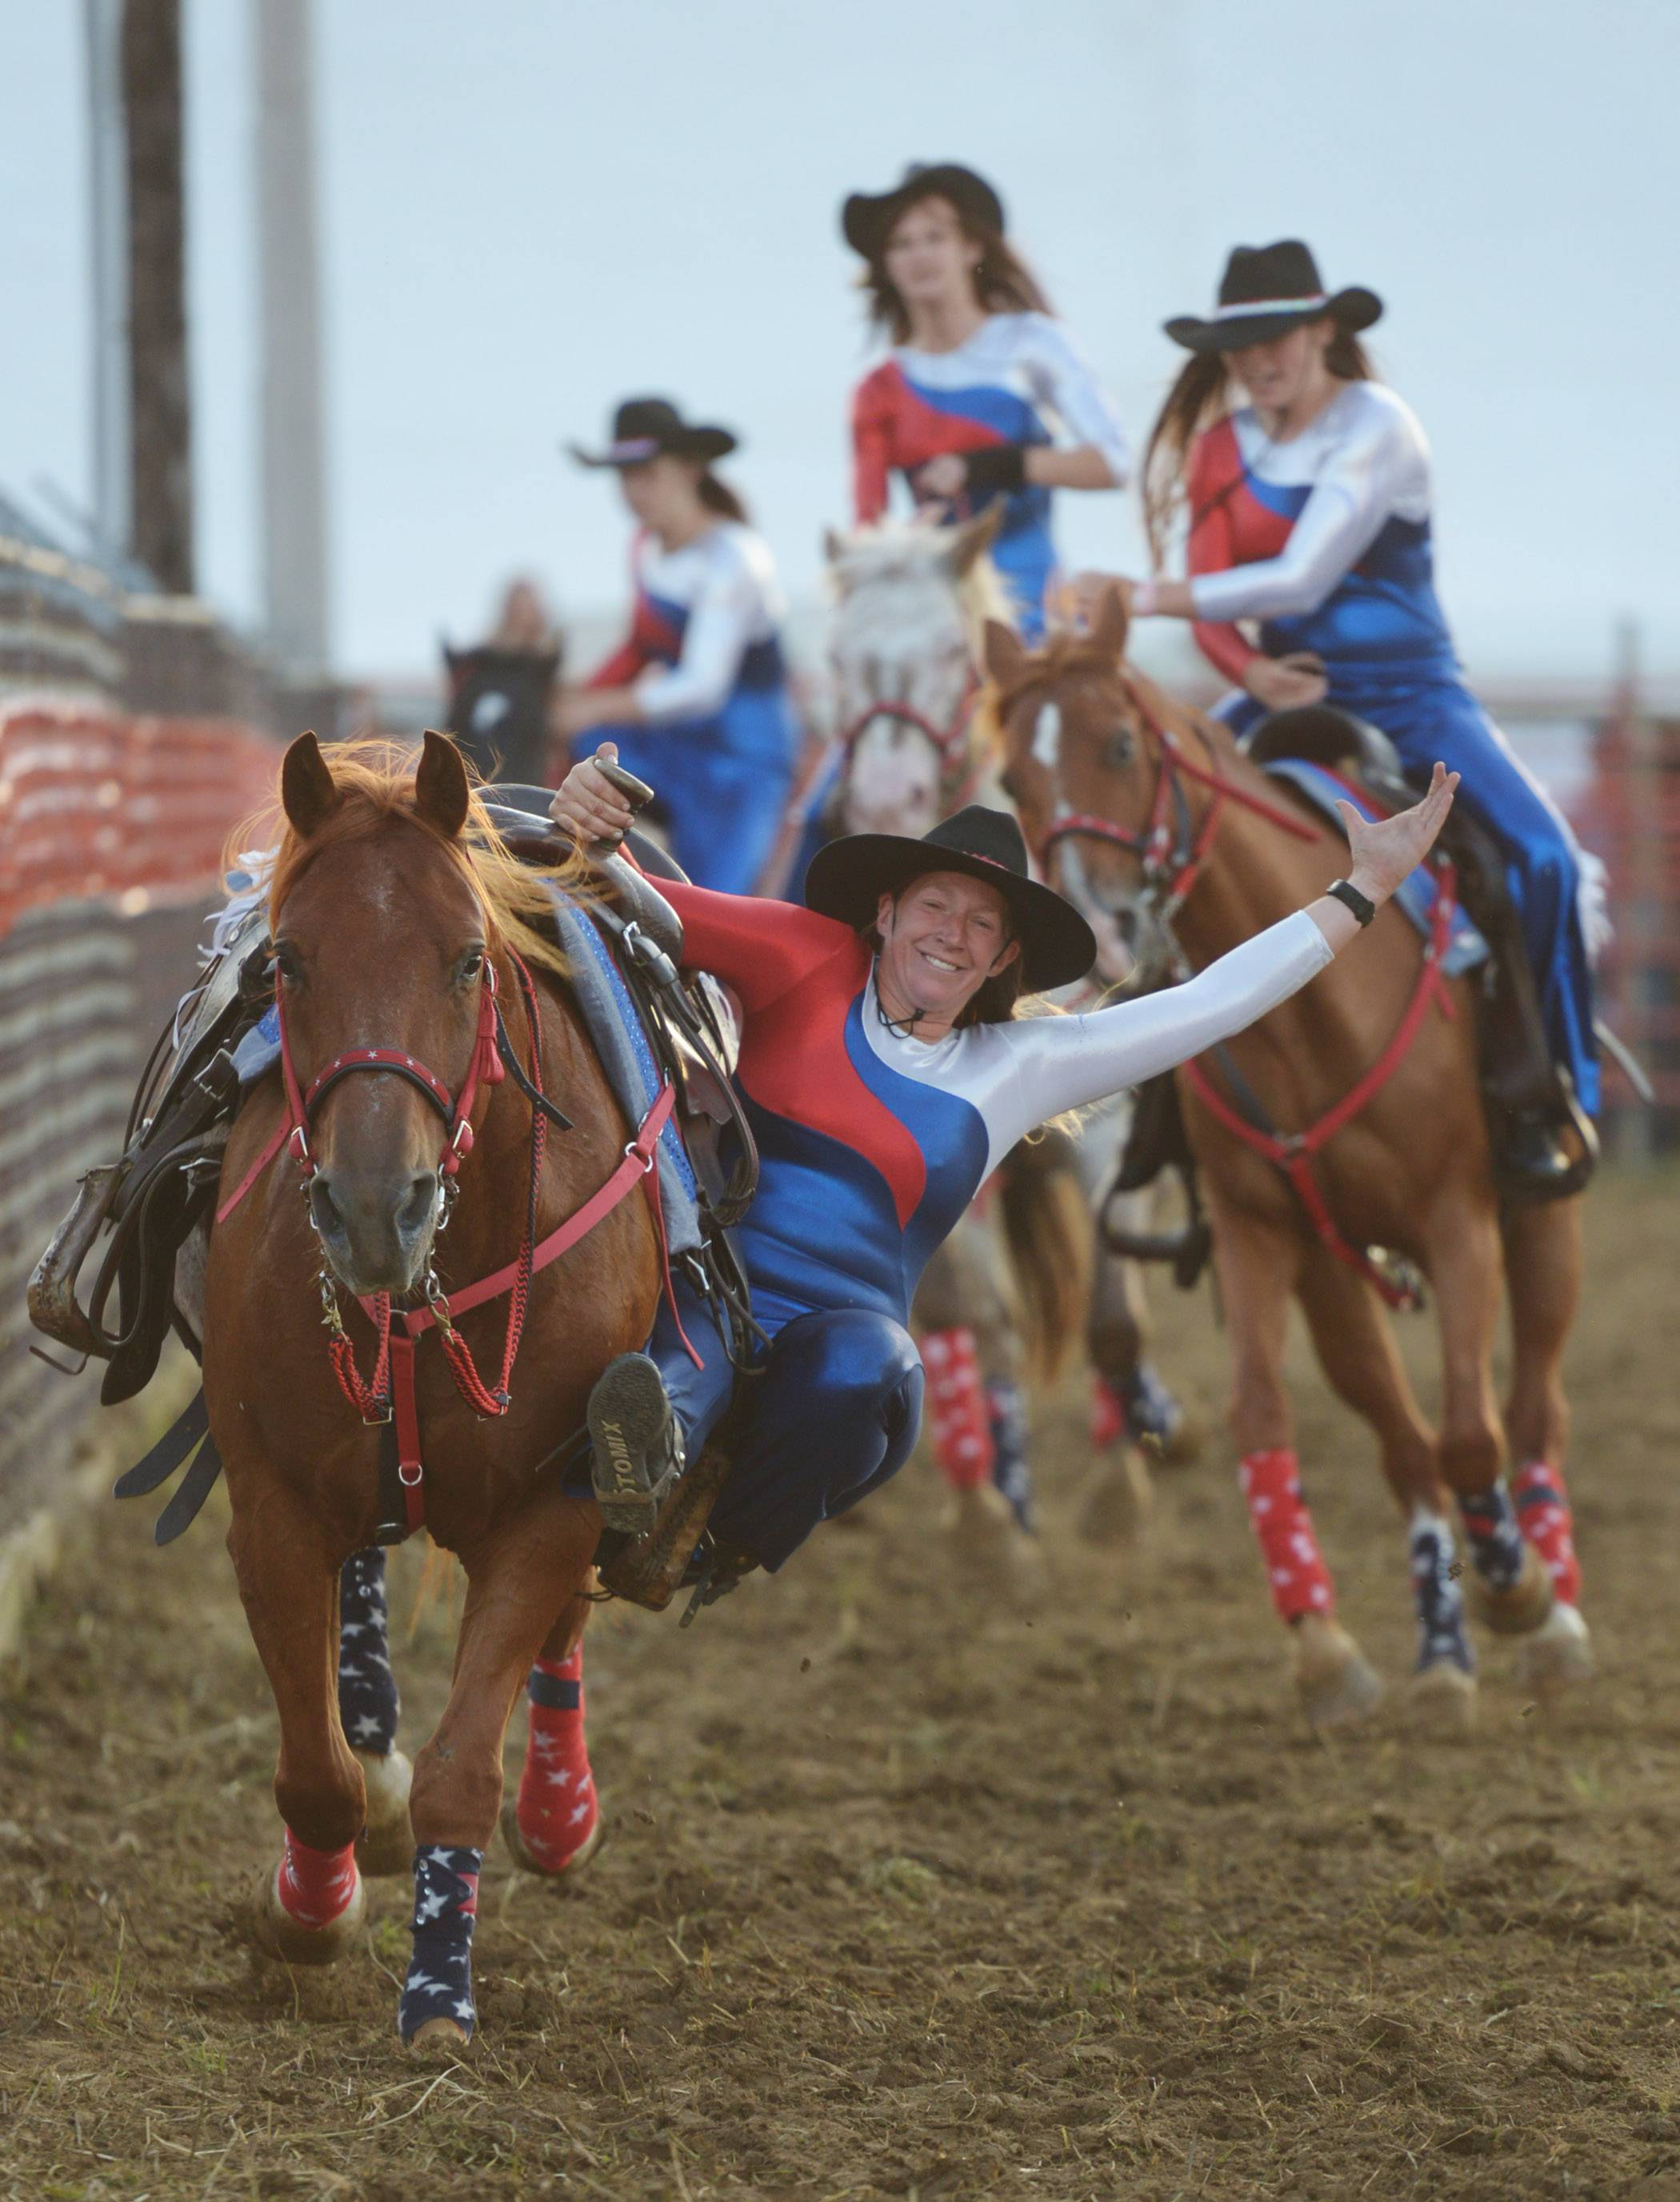 Jenny Vlahos of the Midwest Renegades Drill Team performs during the 54th annual IPRA Championship rodeo Saturday in Wauconda.